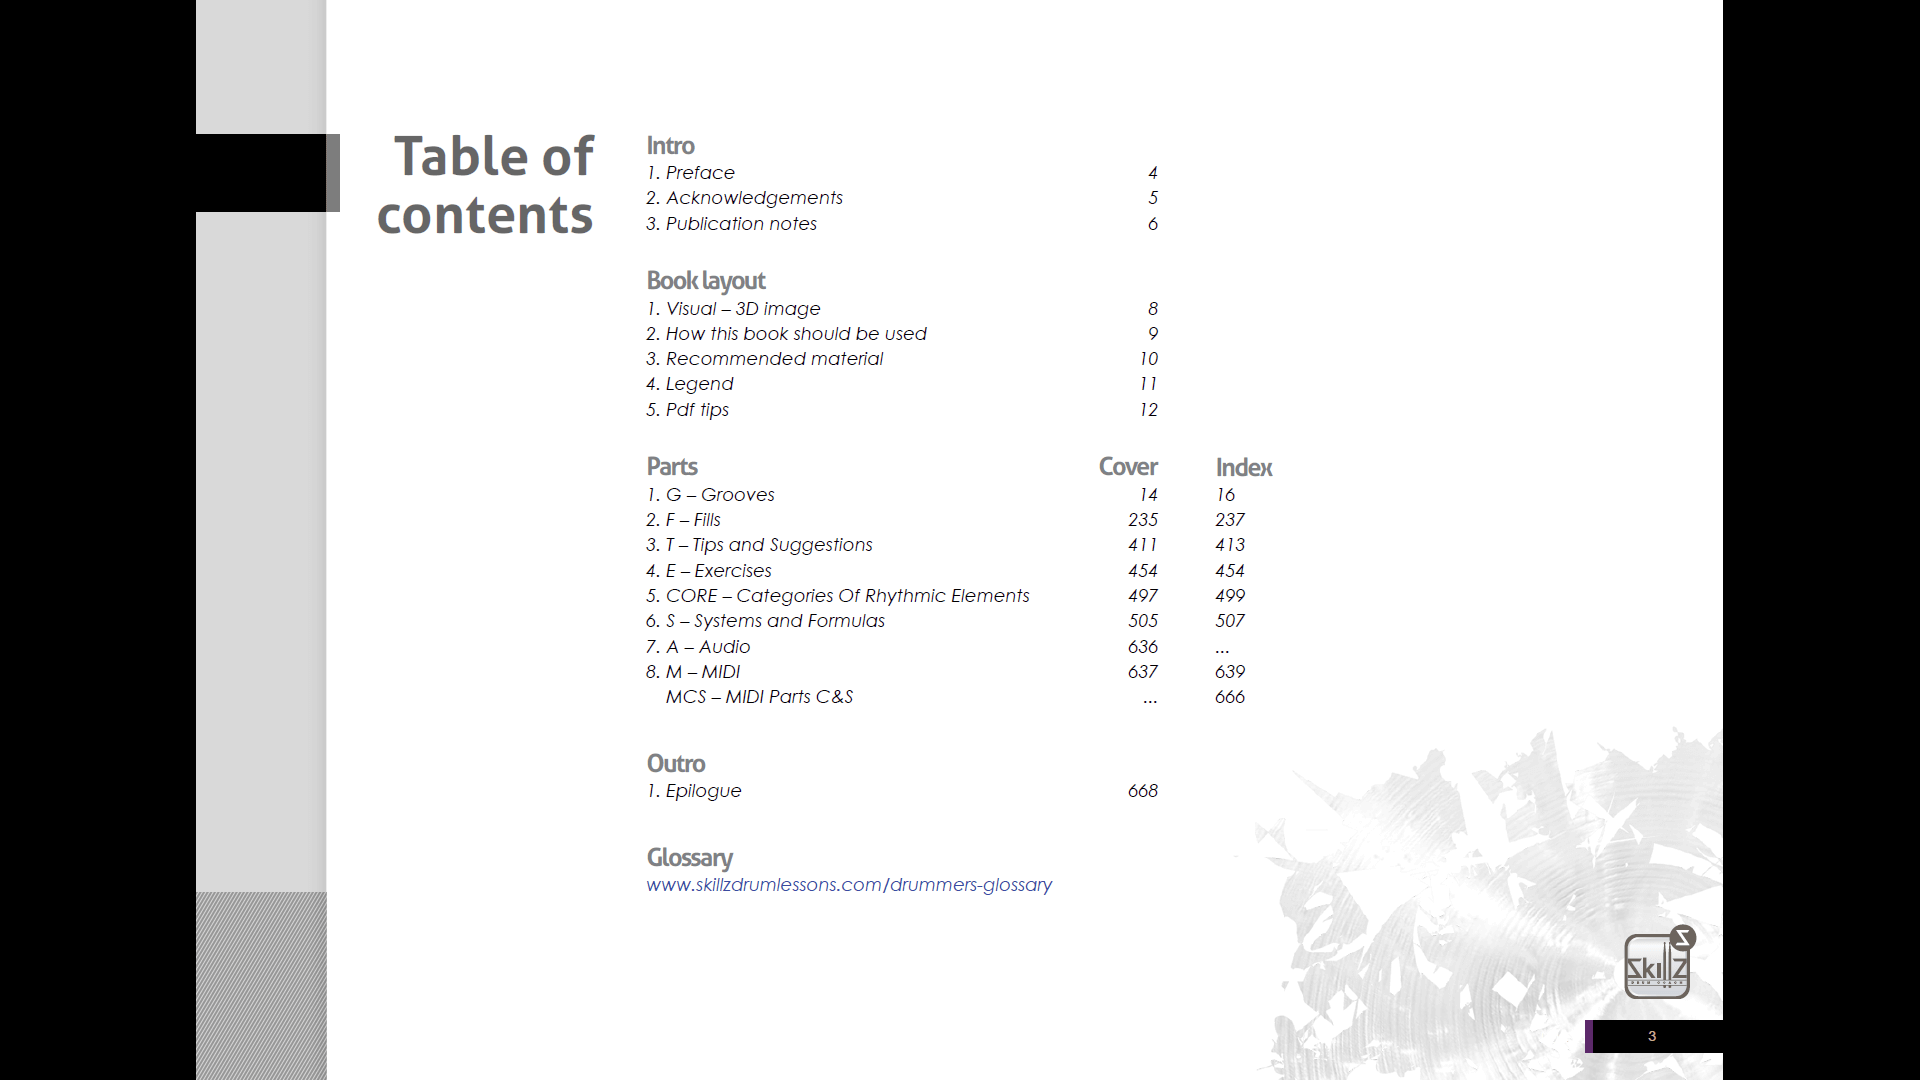 Screenshot Table of Contents drum book about quintuplets Sub 5 Skillz Drum Lessons